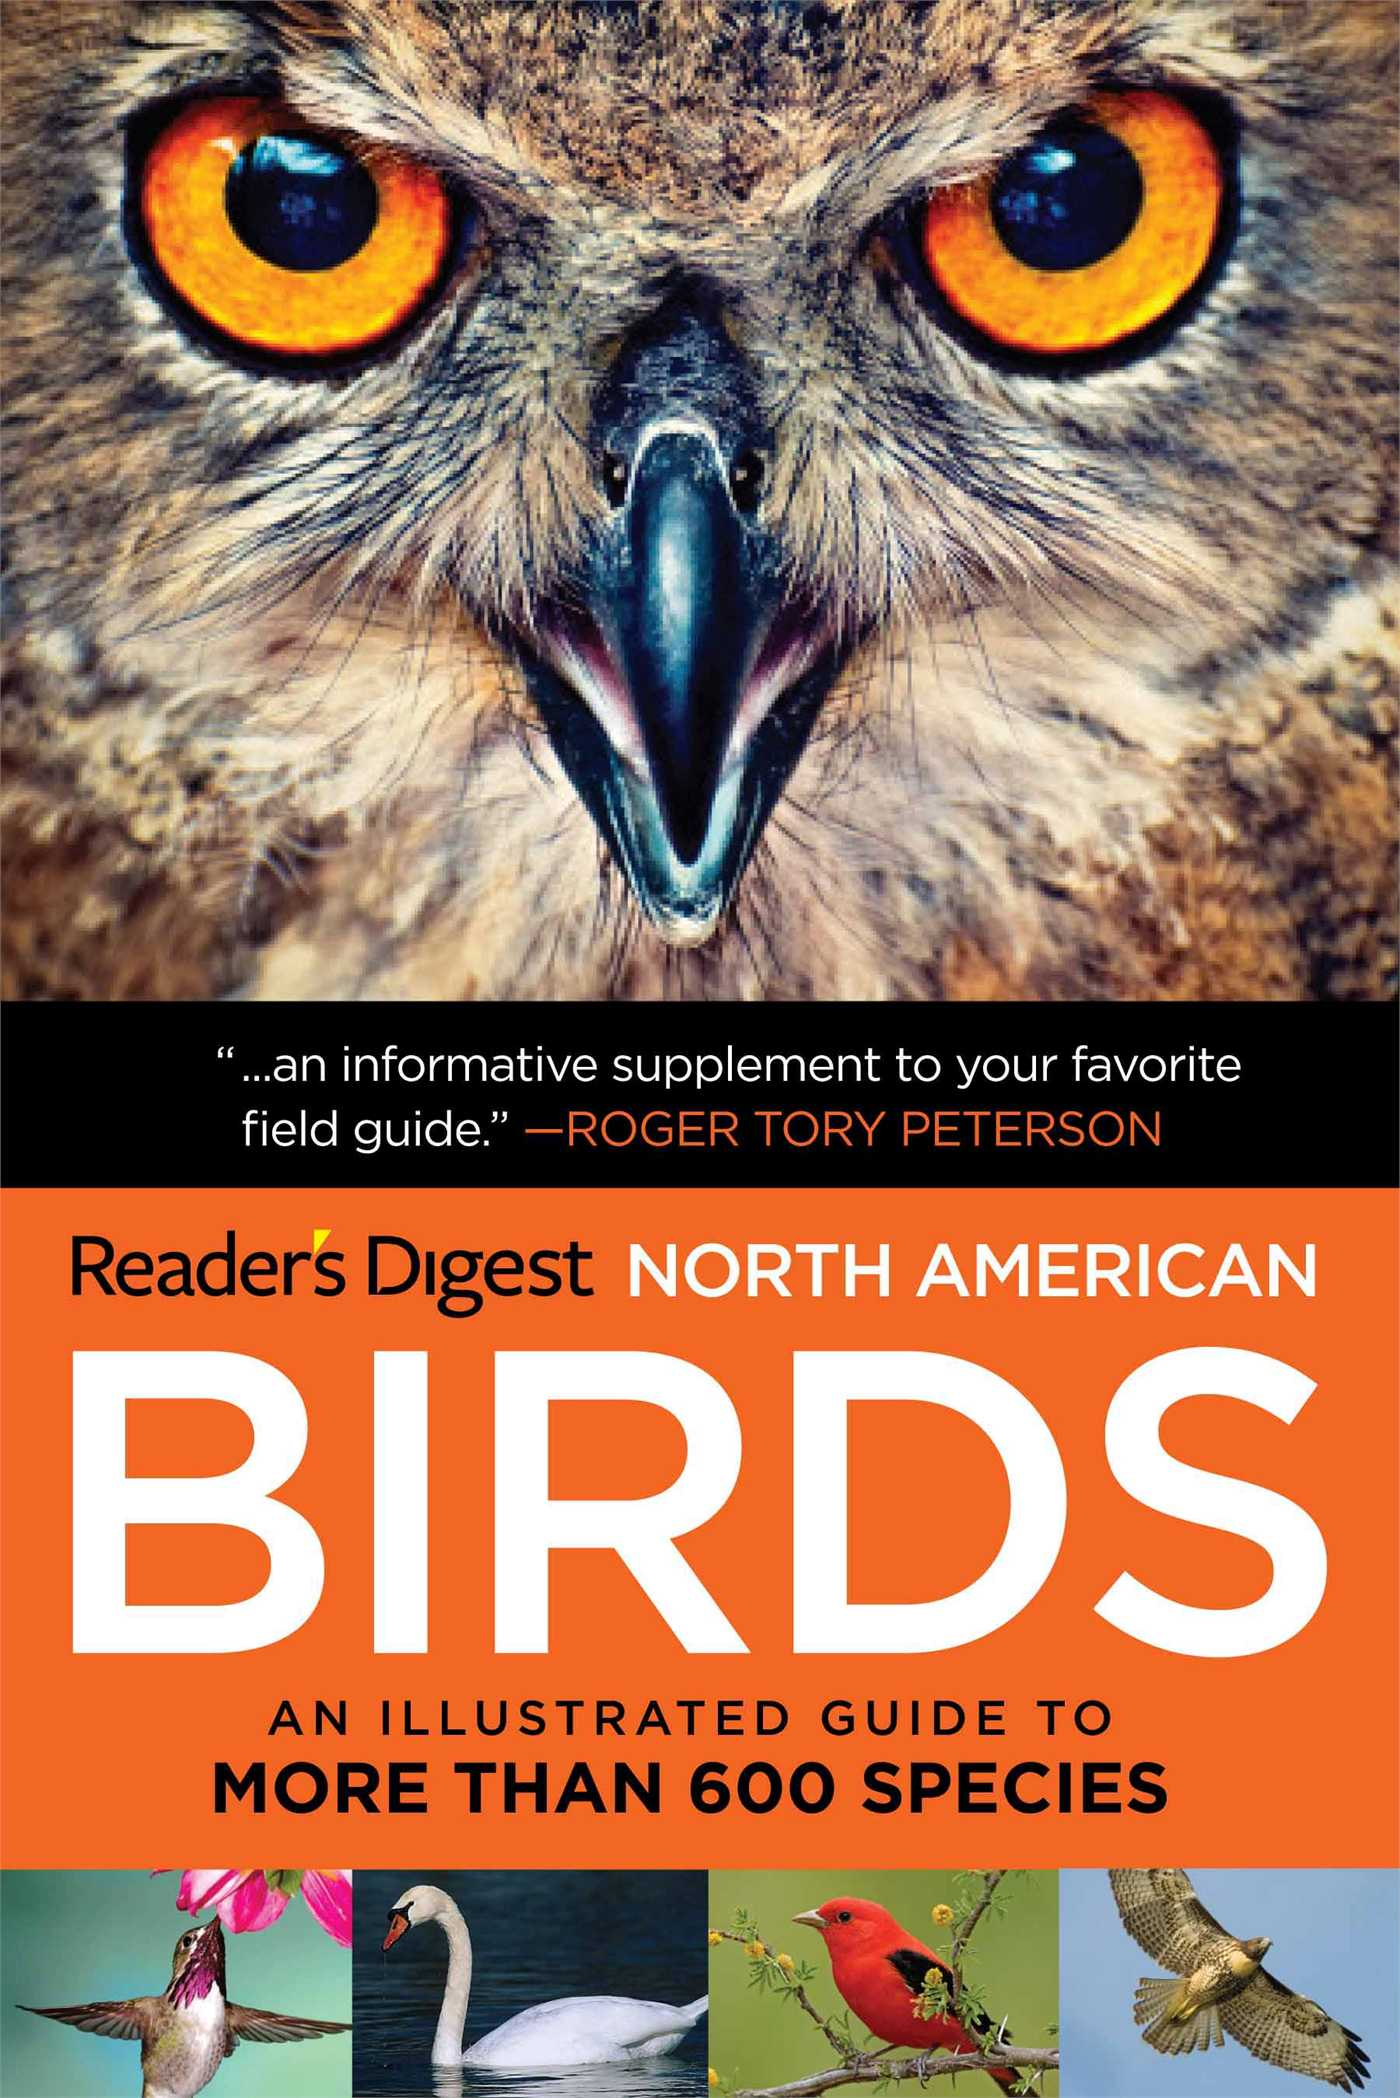 Book Cover Image (jpg): Book of North American Birds